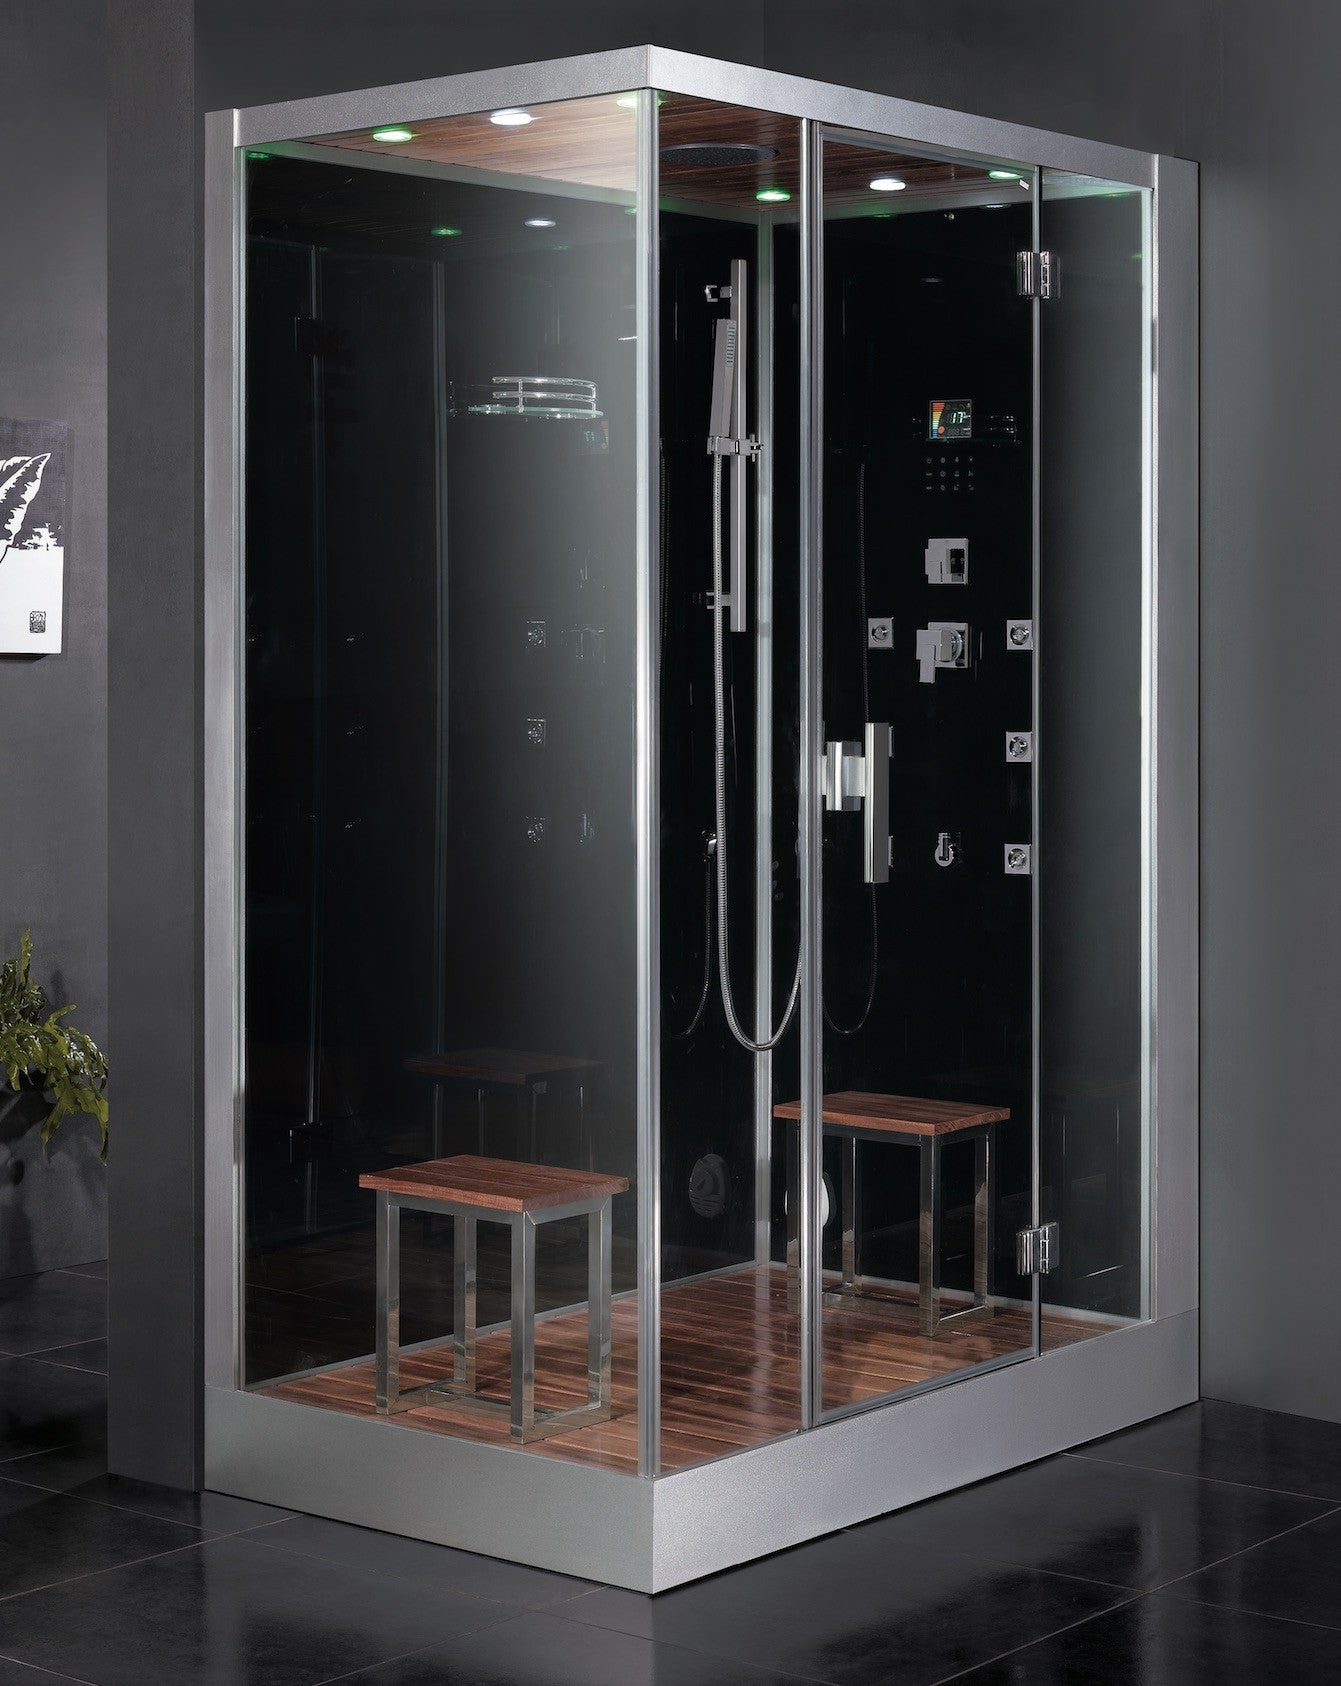 Dz961 f8 atlantic bath steam shower for Build steam shower